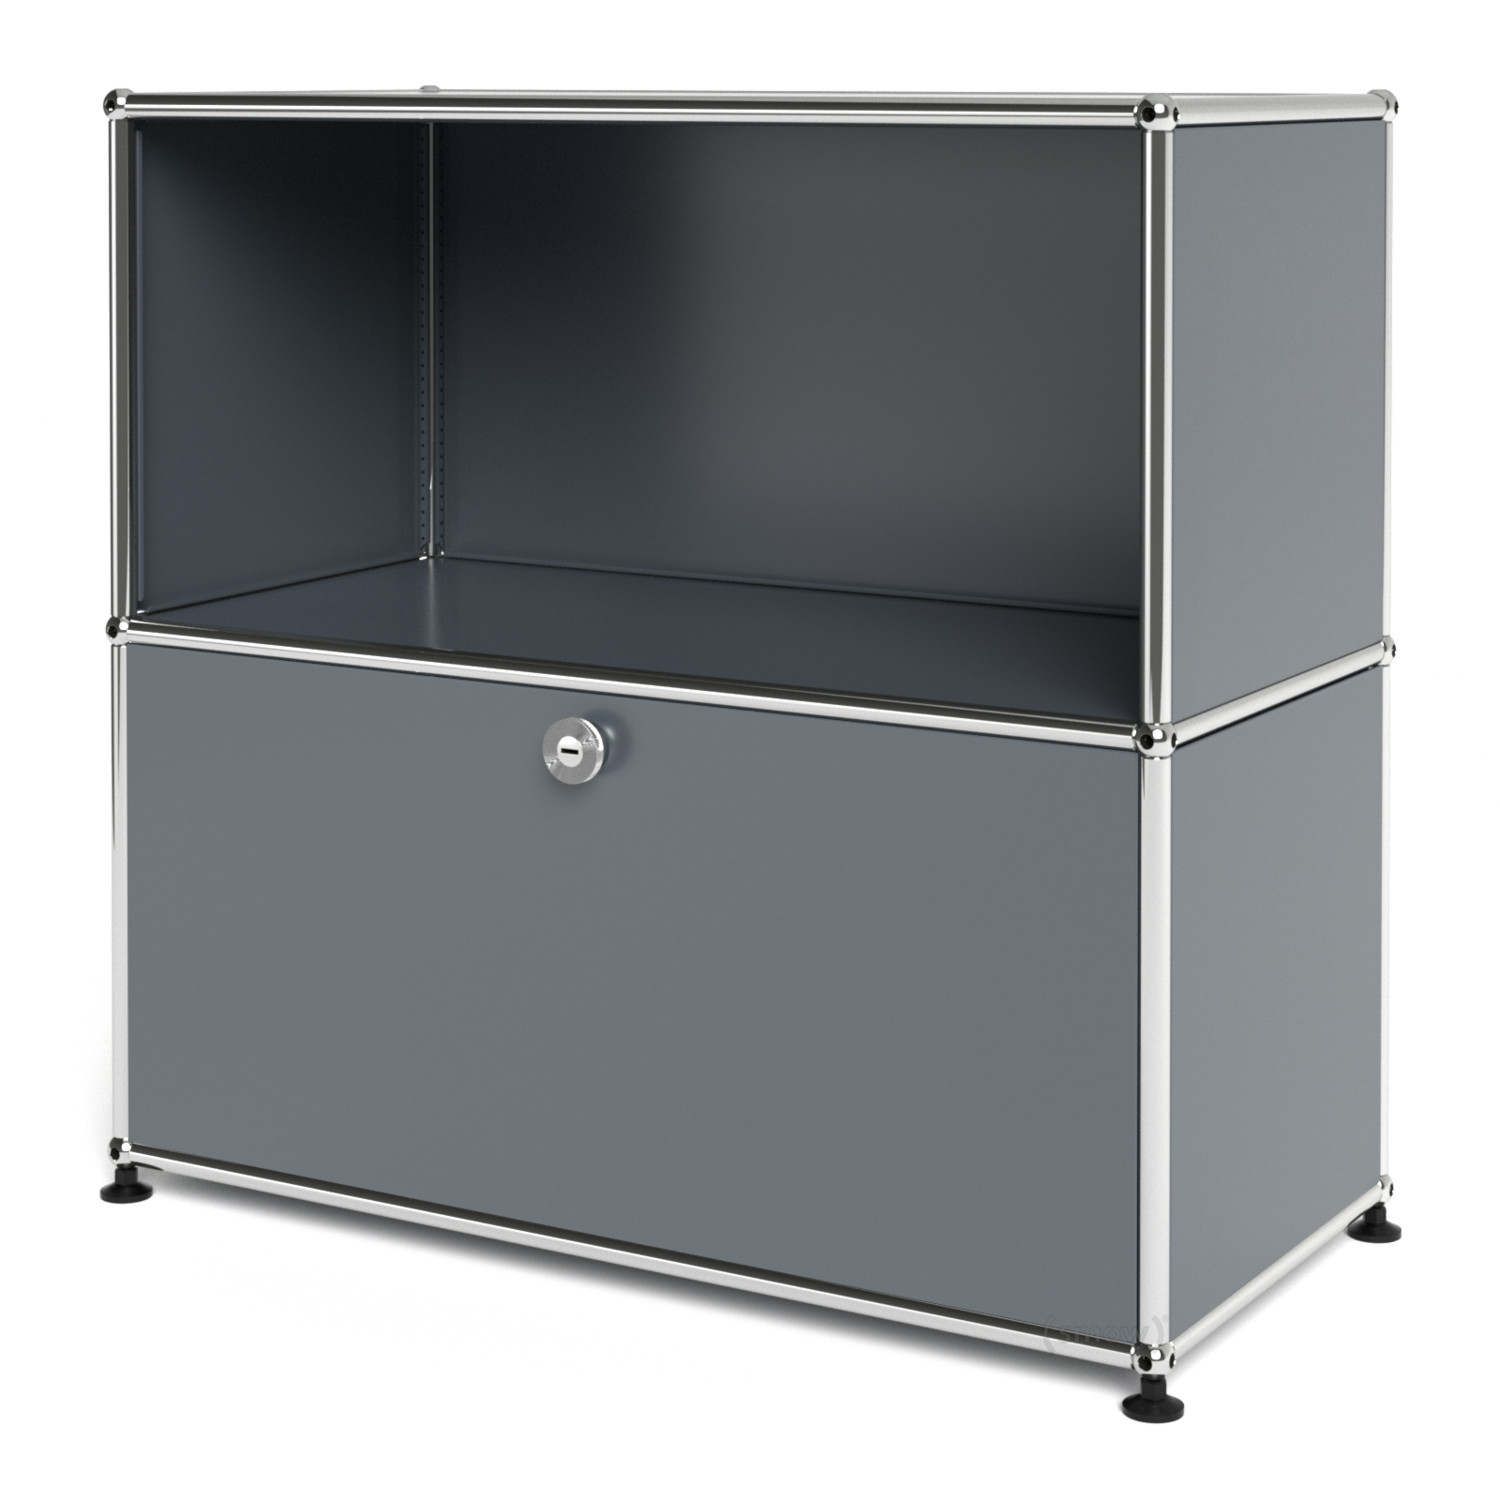 usm haller sideboard m with 1 drop down door mid grey ral. Black Bedroom Furniture Sets. Home Design Ideas